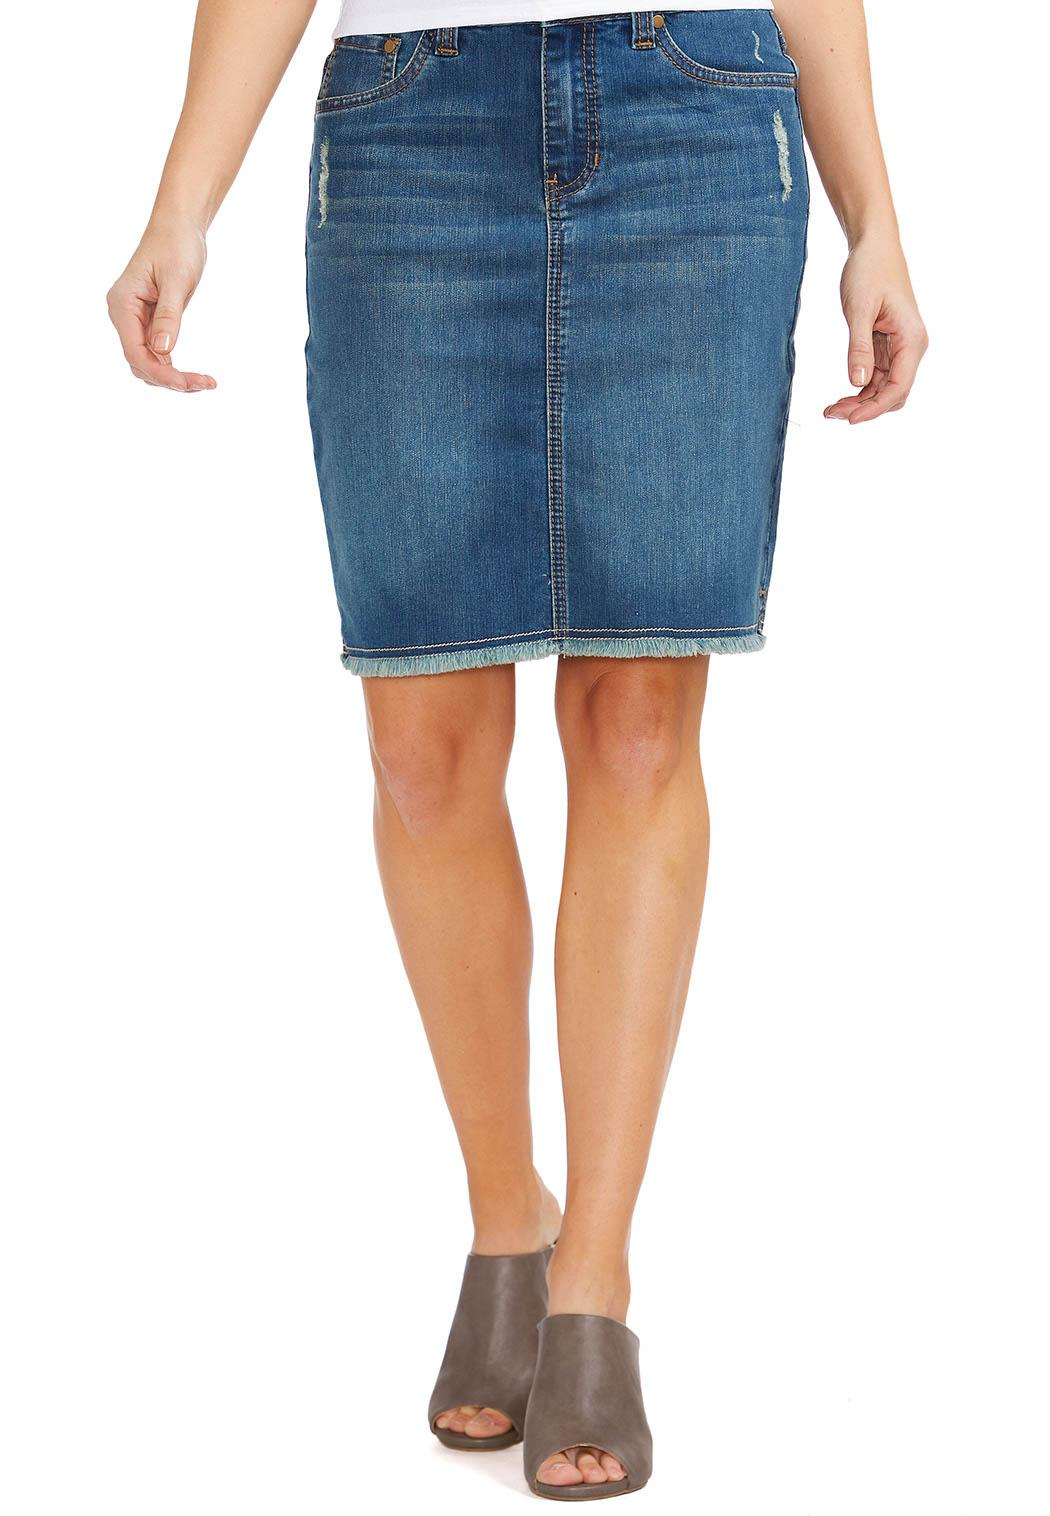 Cato Fashions Plus Size Skirts Frayed Hem Denim Skirt Plus